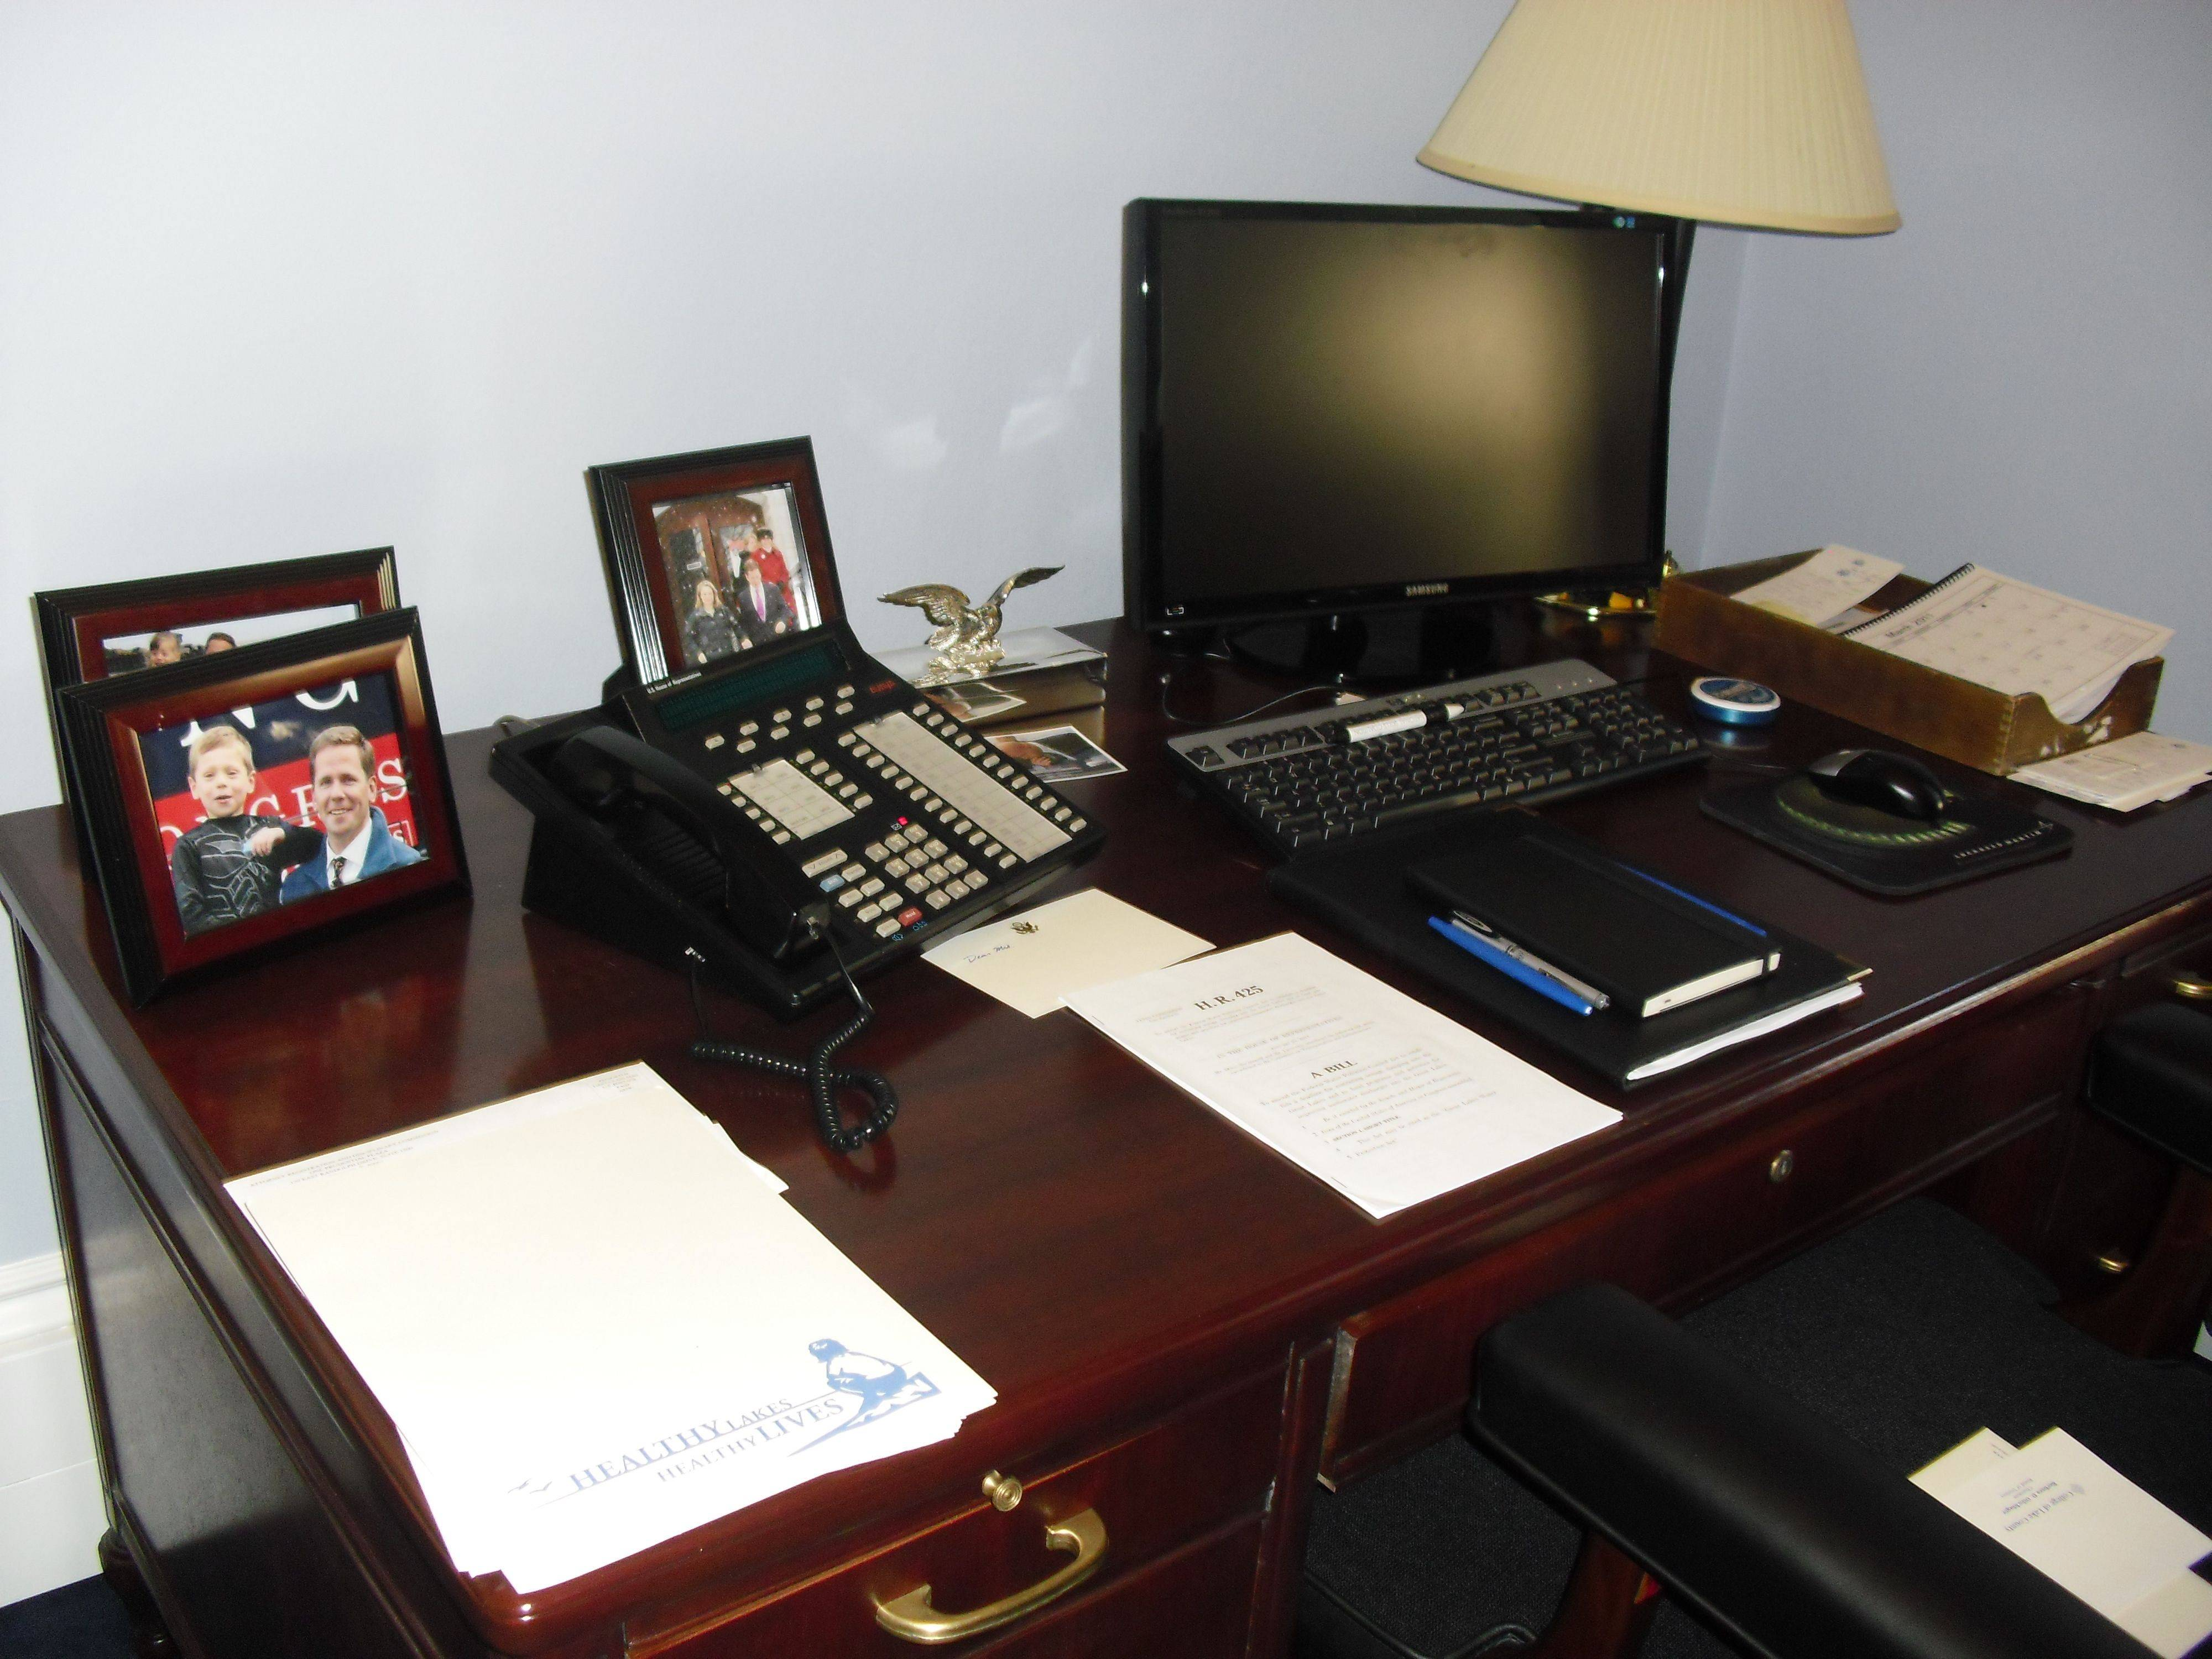 U.S. Rep. Robert Dold's Washington, D.C., office is in perfect order.